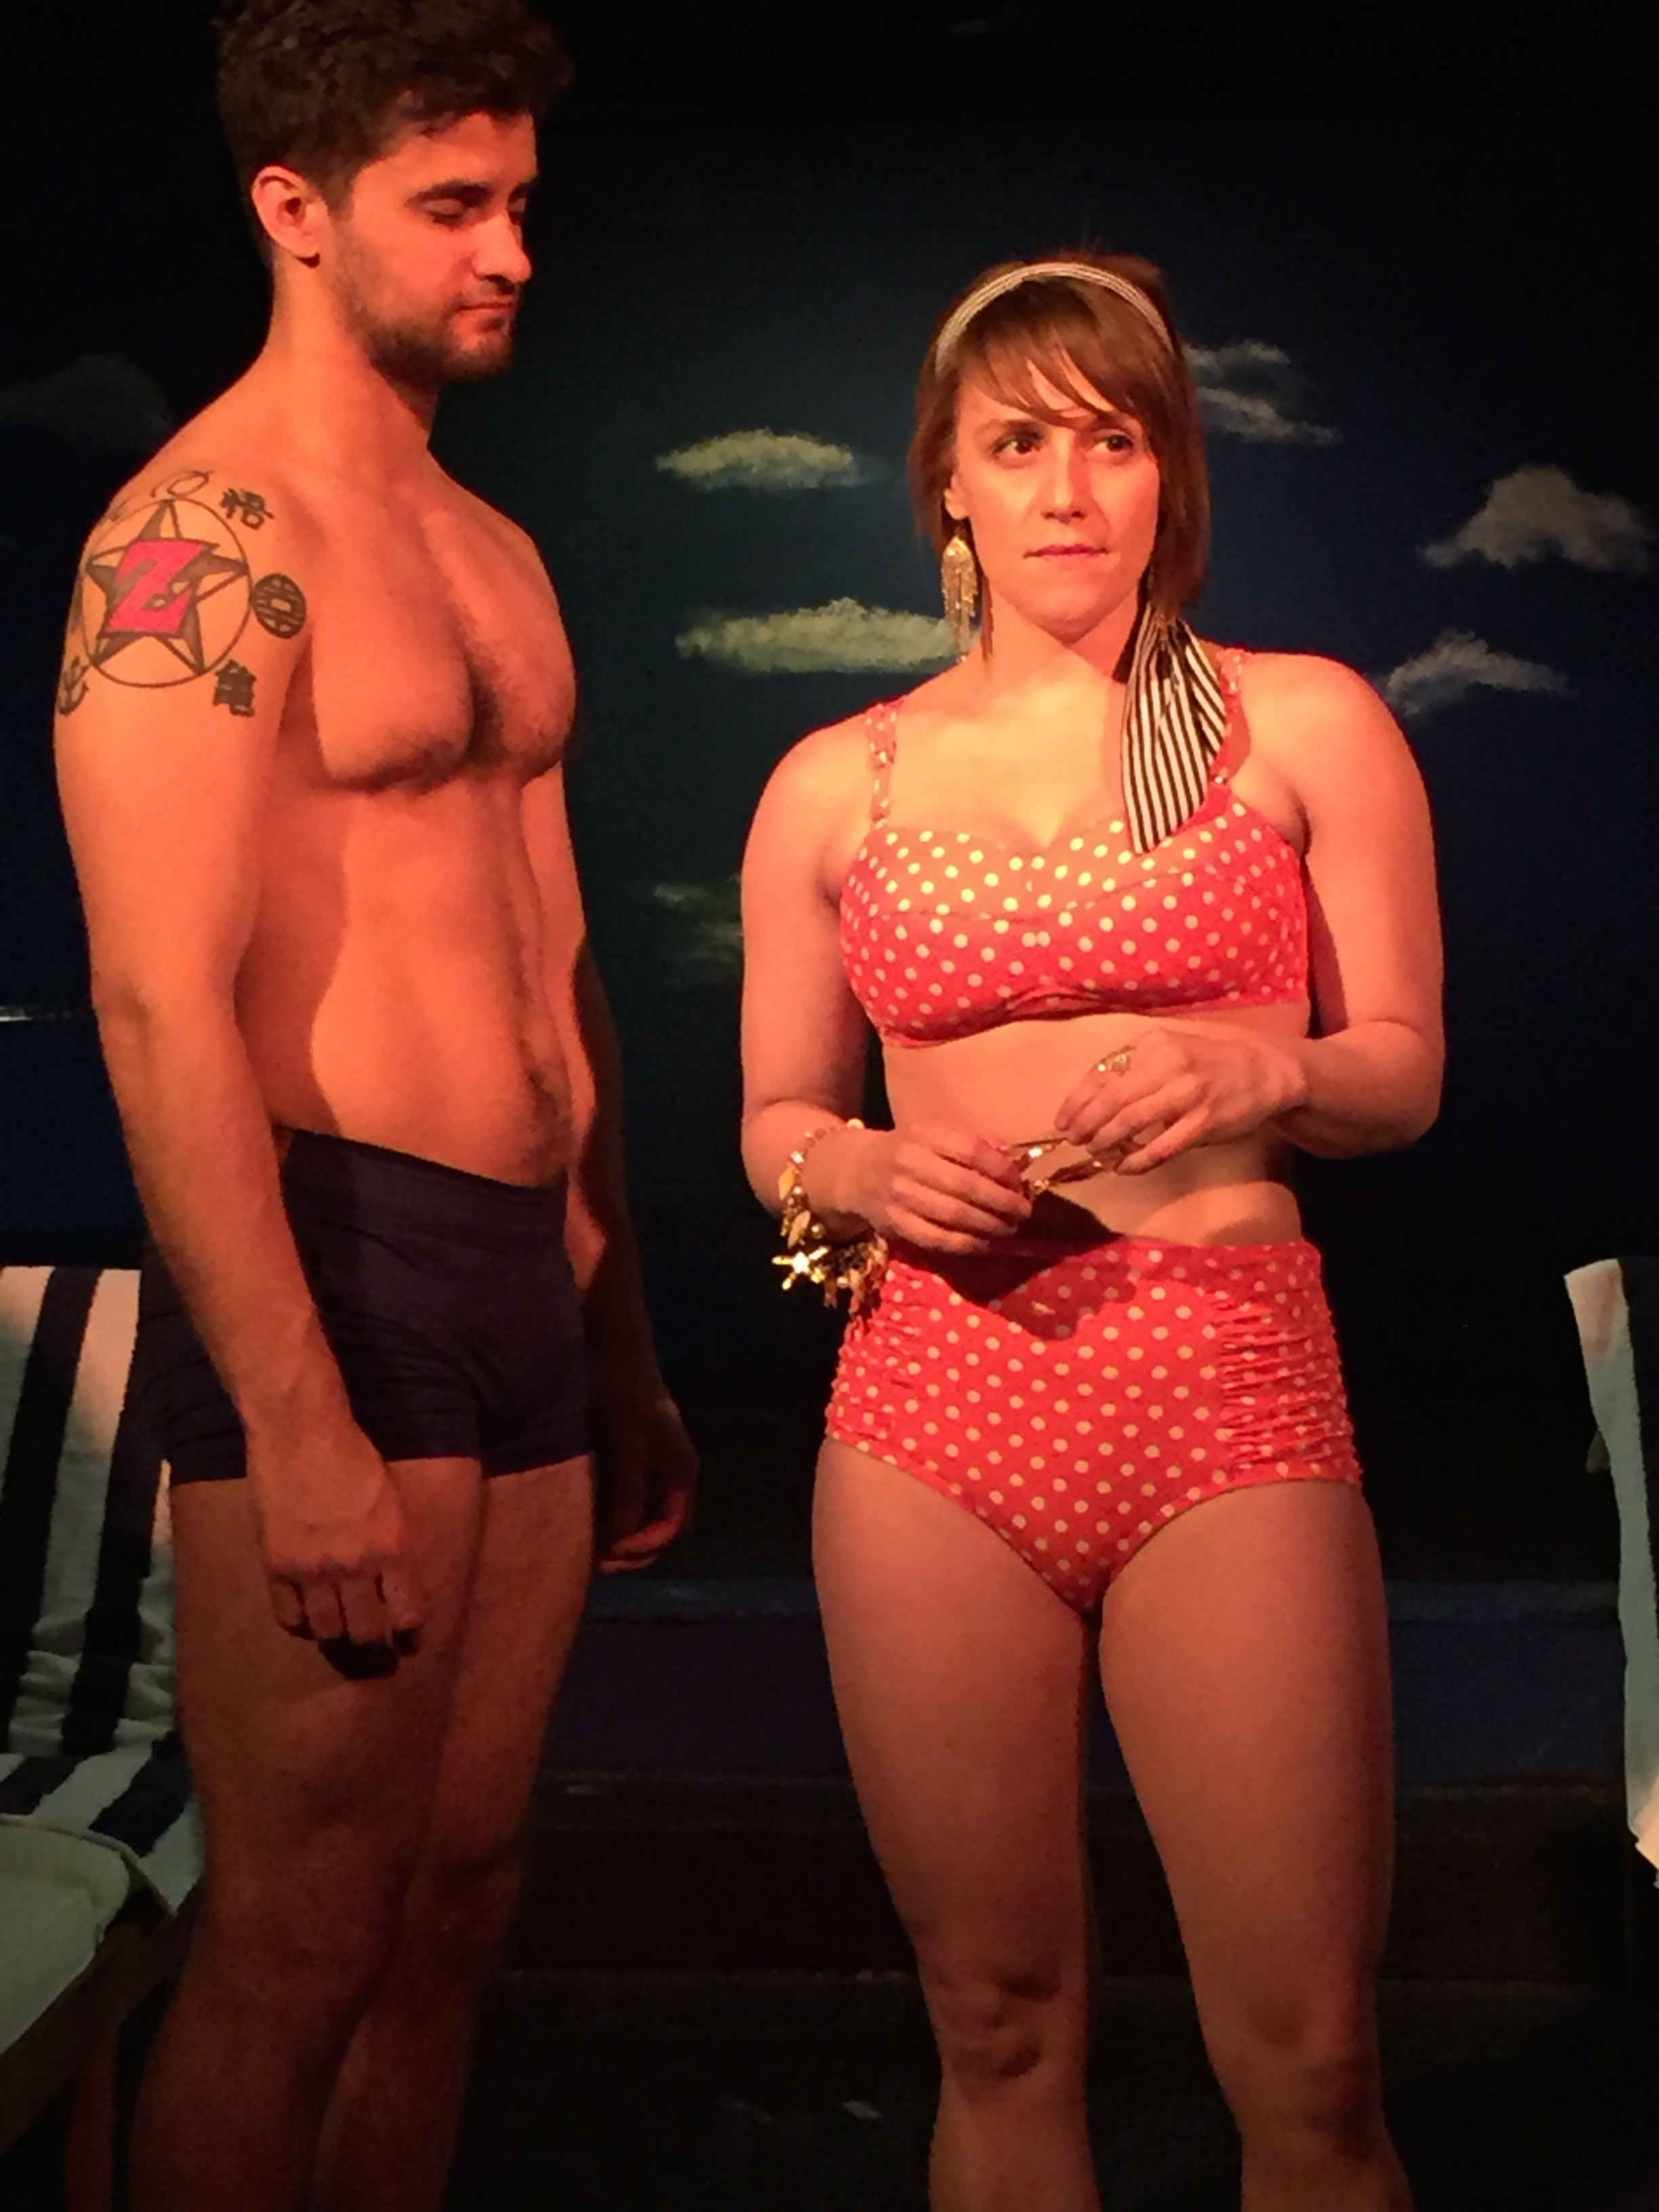 """STS Playhouse presents """"Starry Starry Night in Phoenicia May 27th!"""